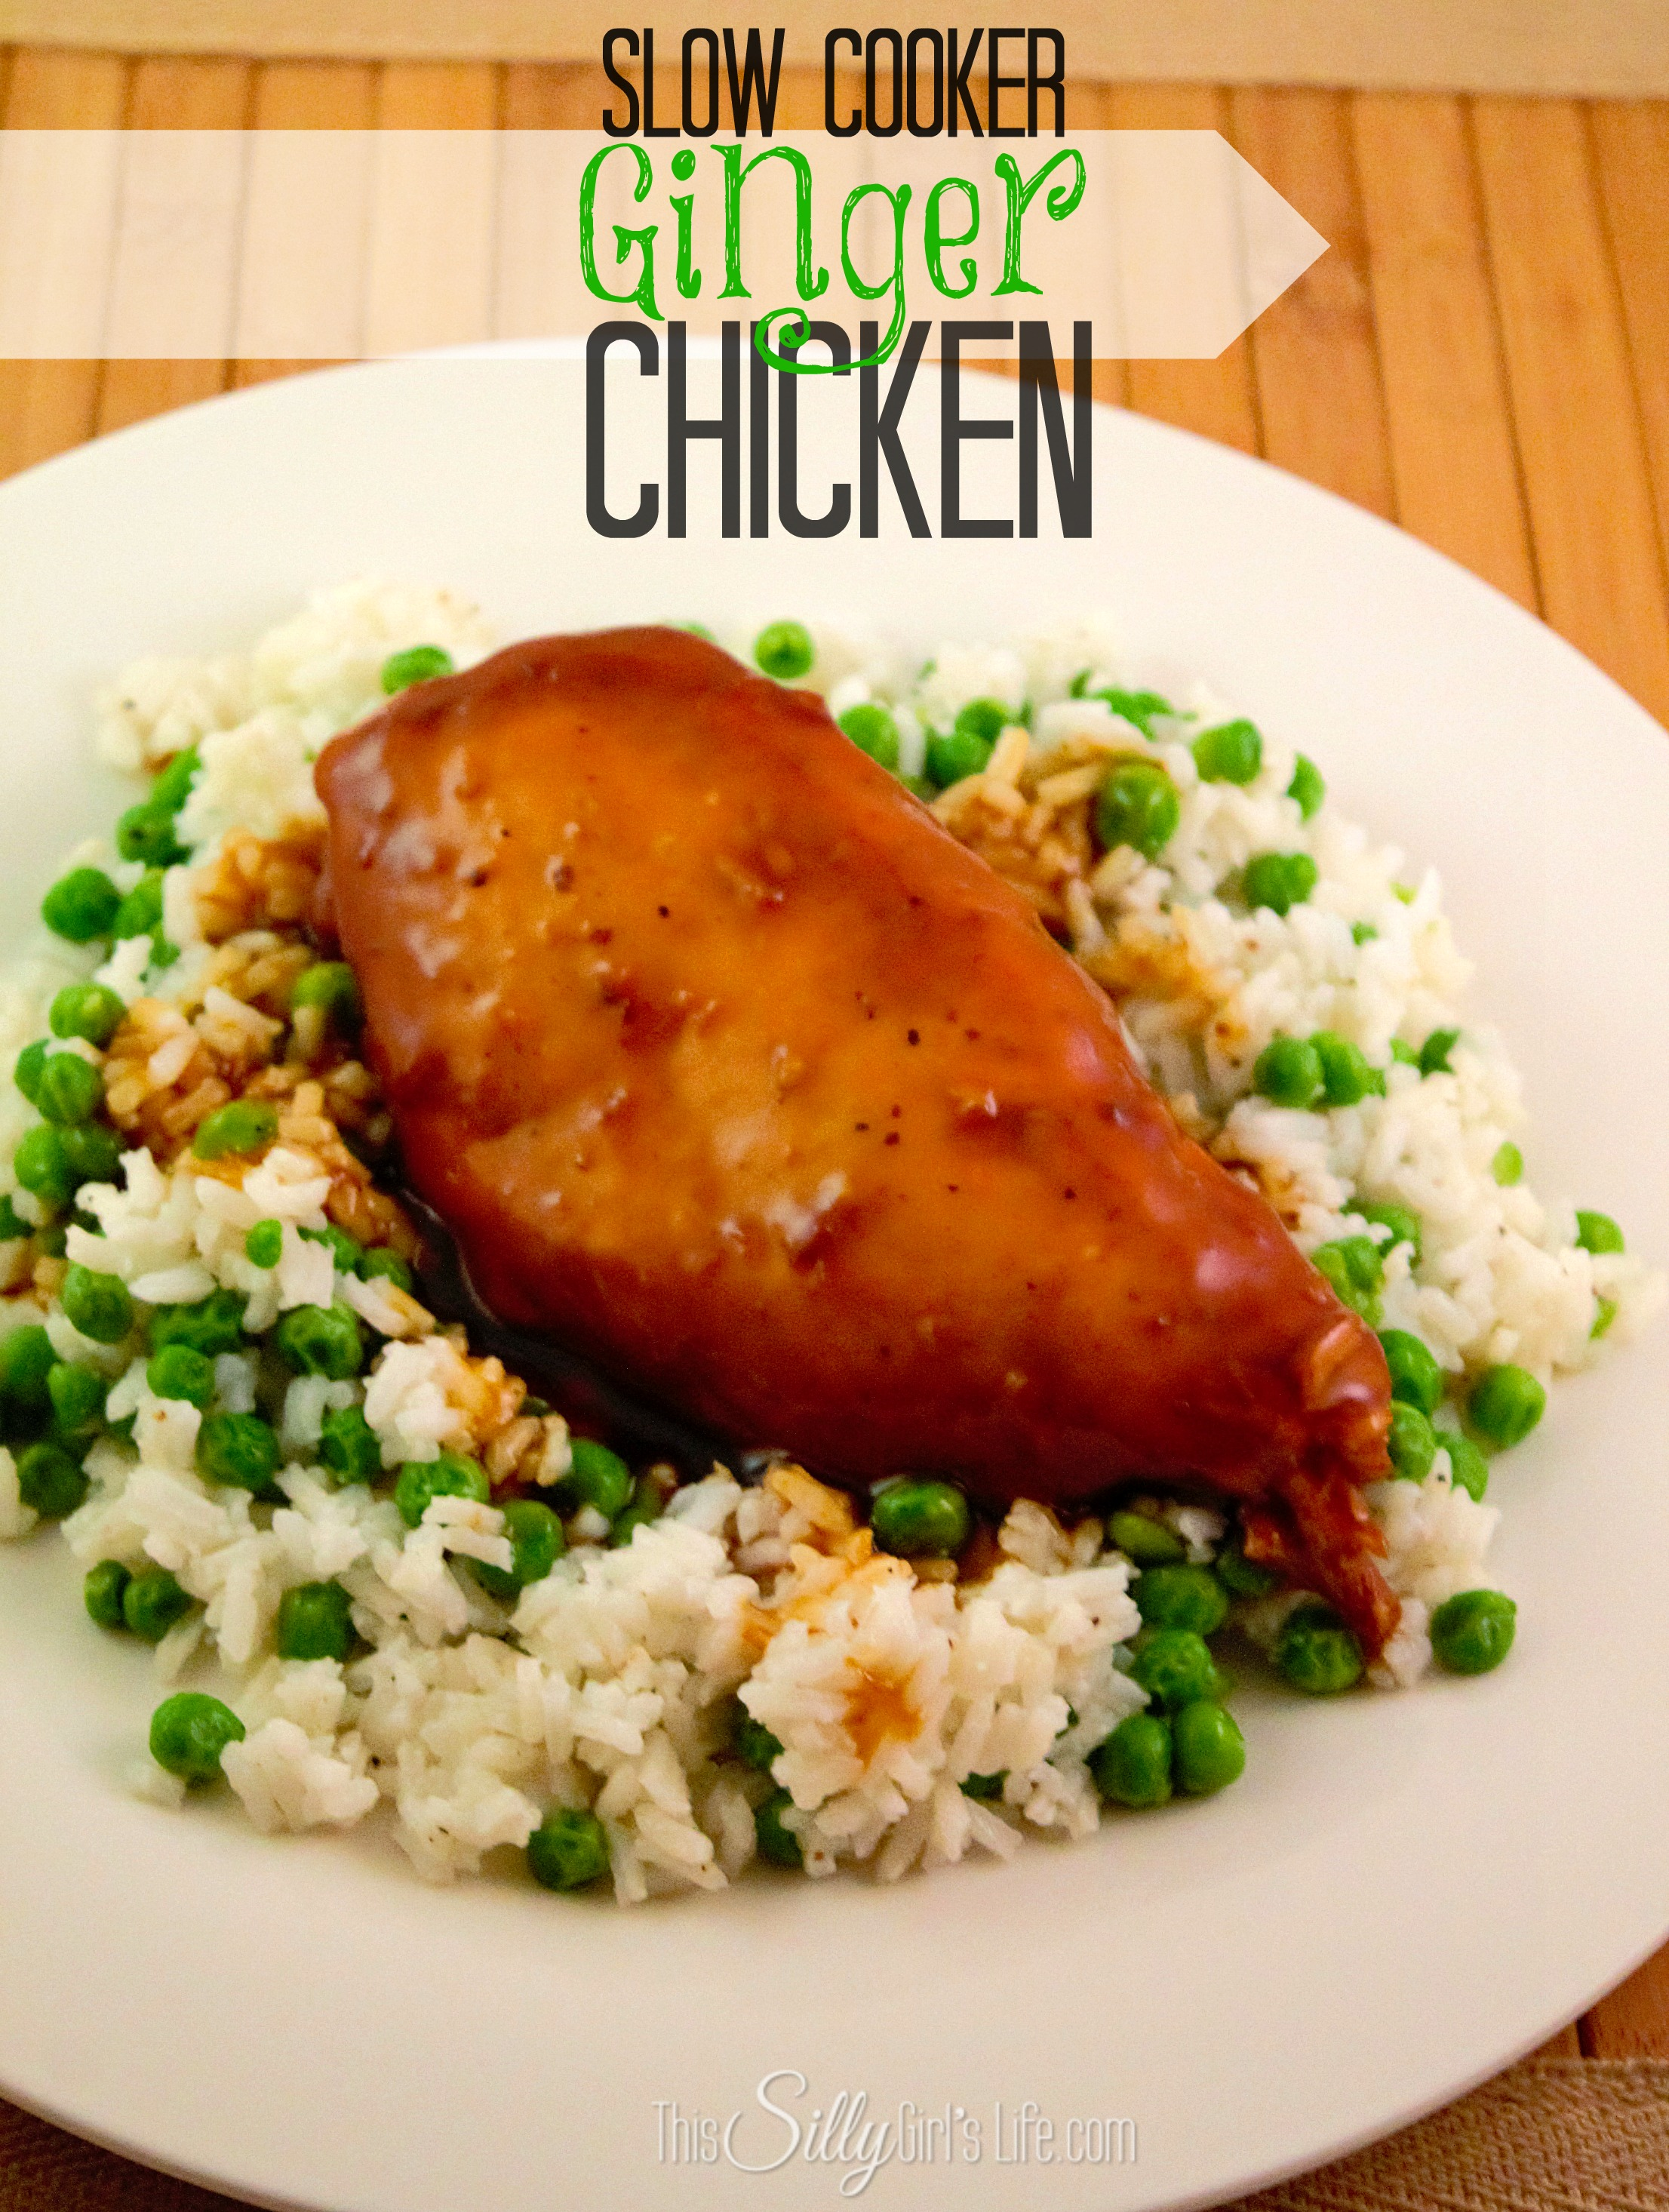 Slow Cooker Ginger Chicken recipe from http://ThisSillyGirlsLife.com #SlowCooker #Chicken #Asian #GingerChicken